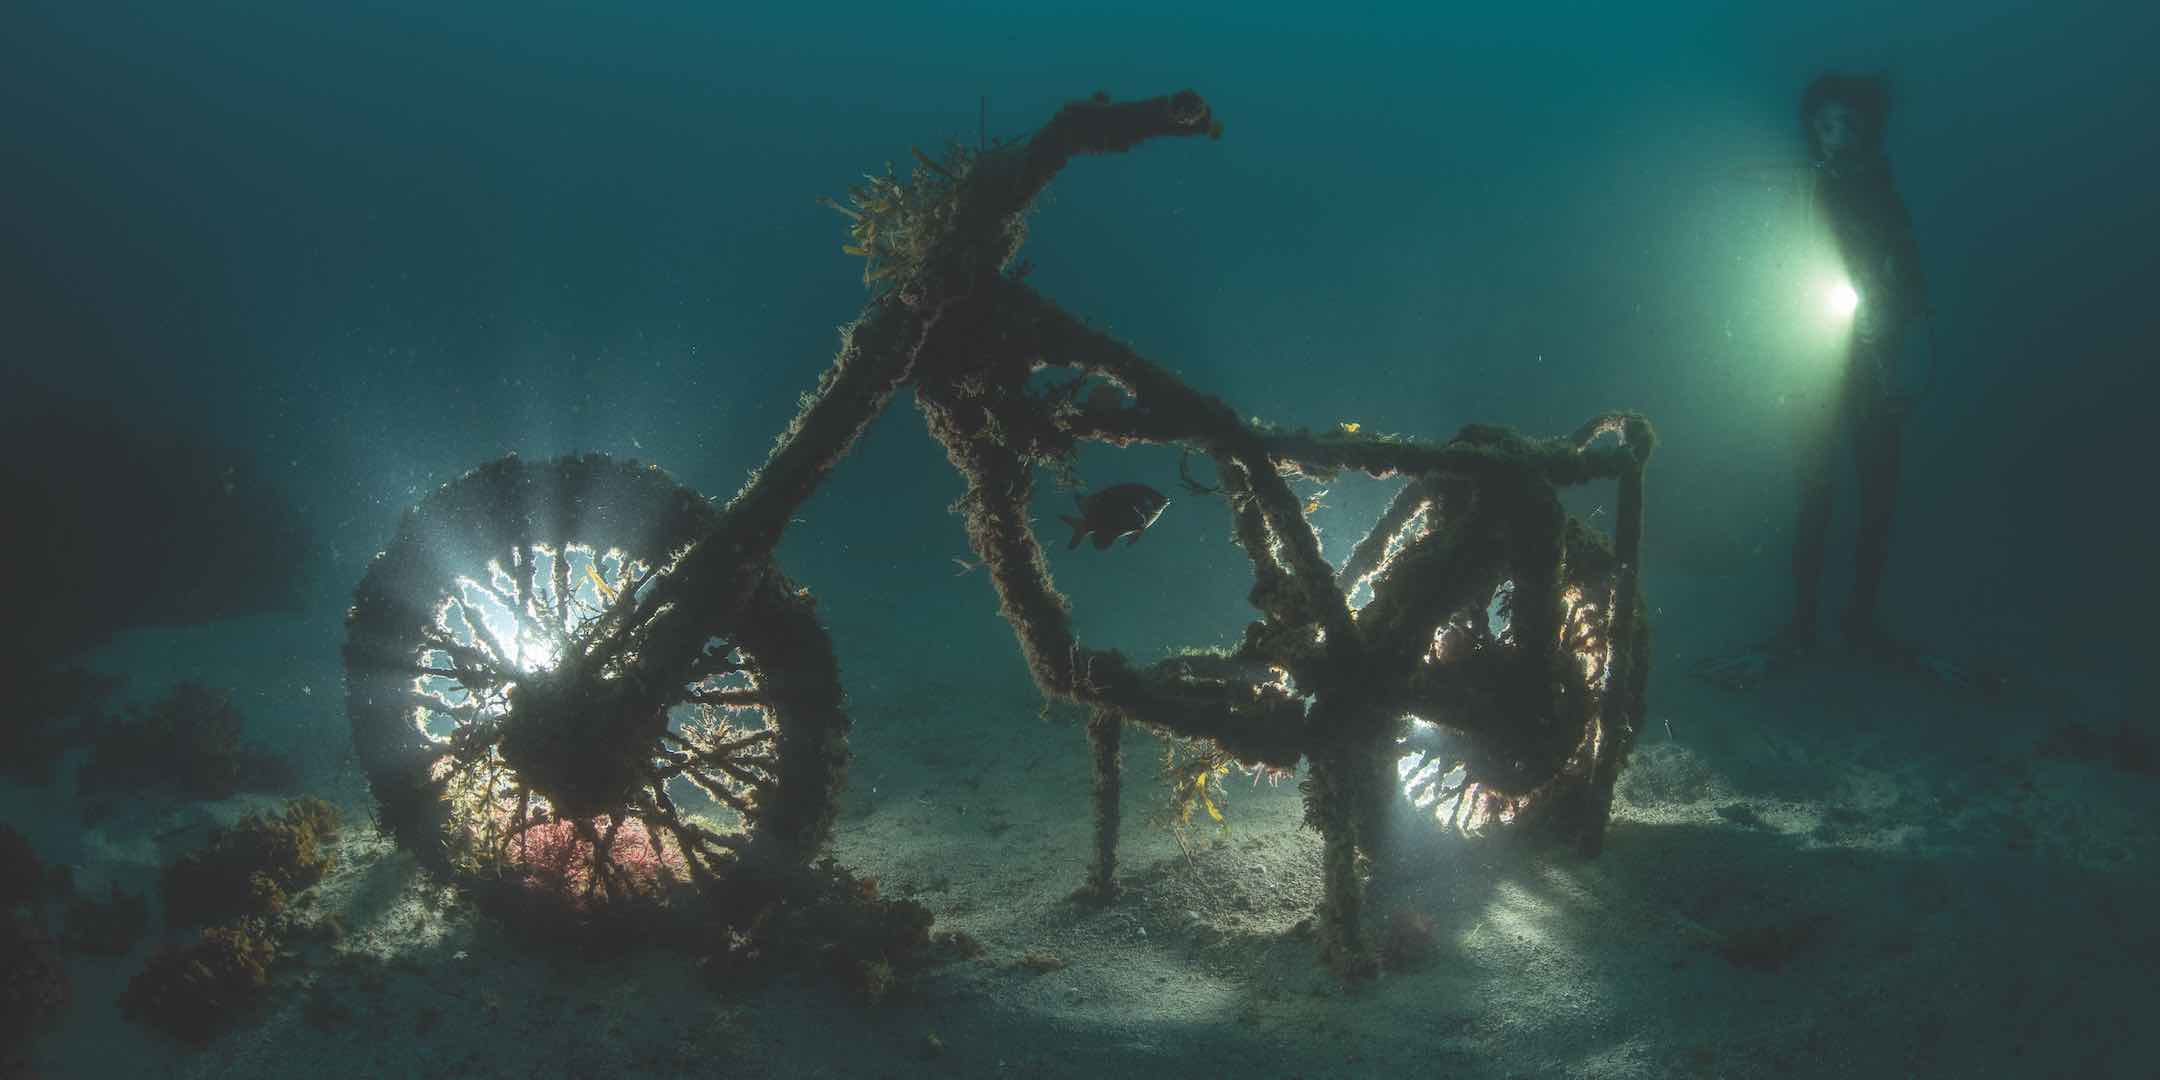 A discarded motorbike transforms from trash to treasure by creating habitat for small fish and invertebrate growth in the Cabbage Tree Bay Aquatic Reserve off Manly